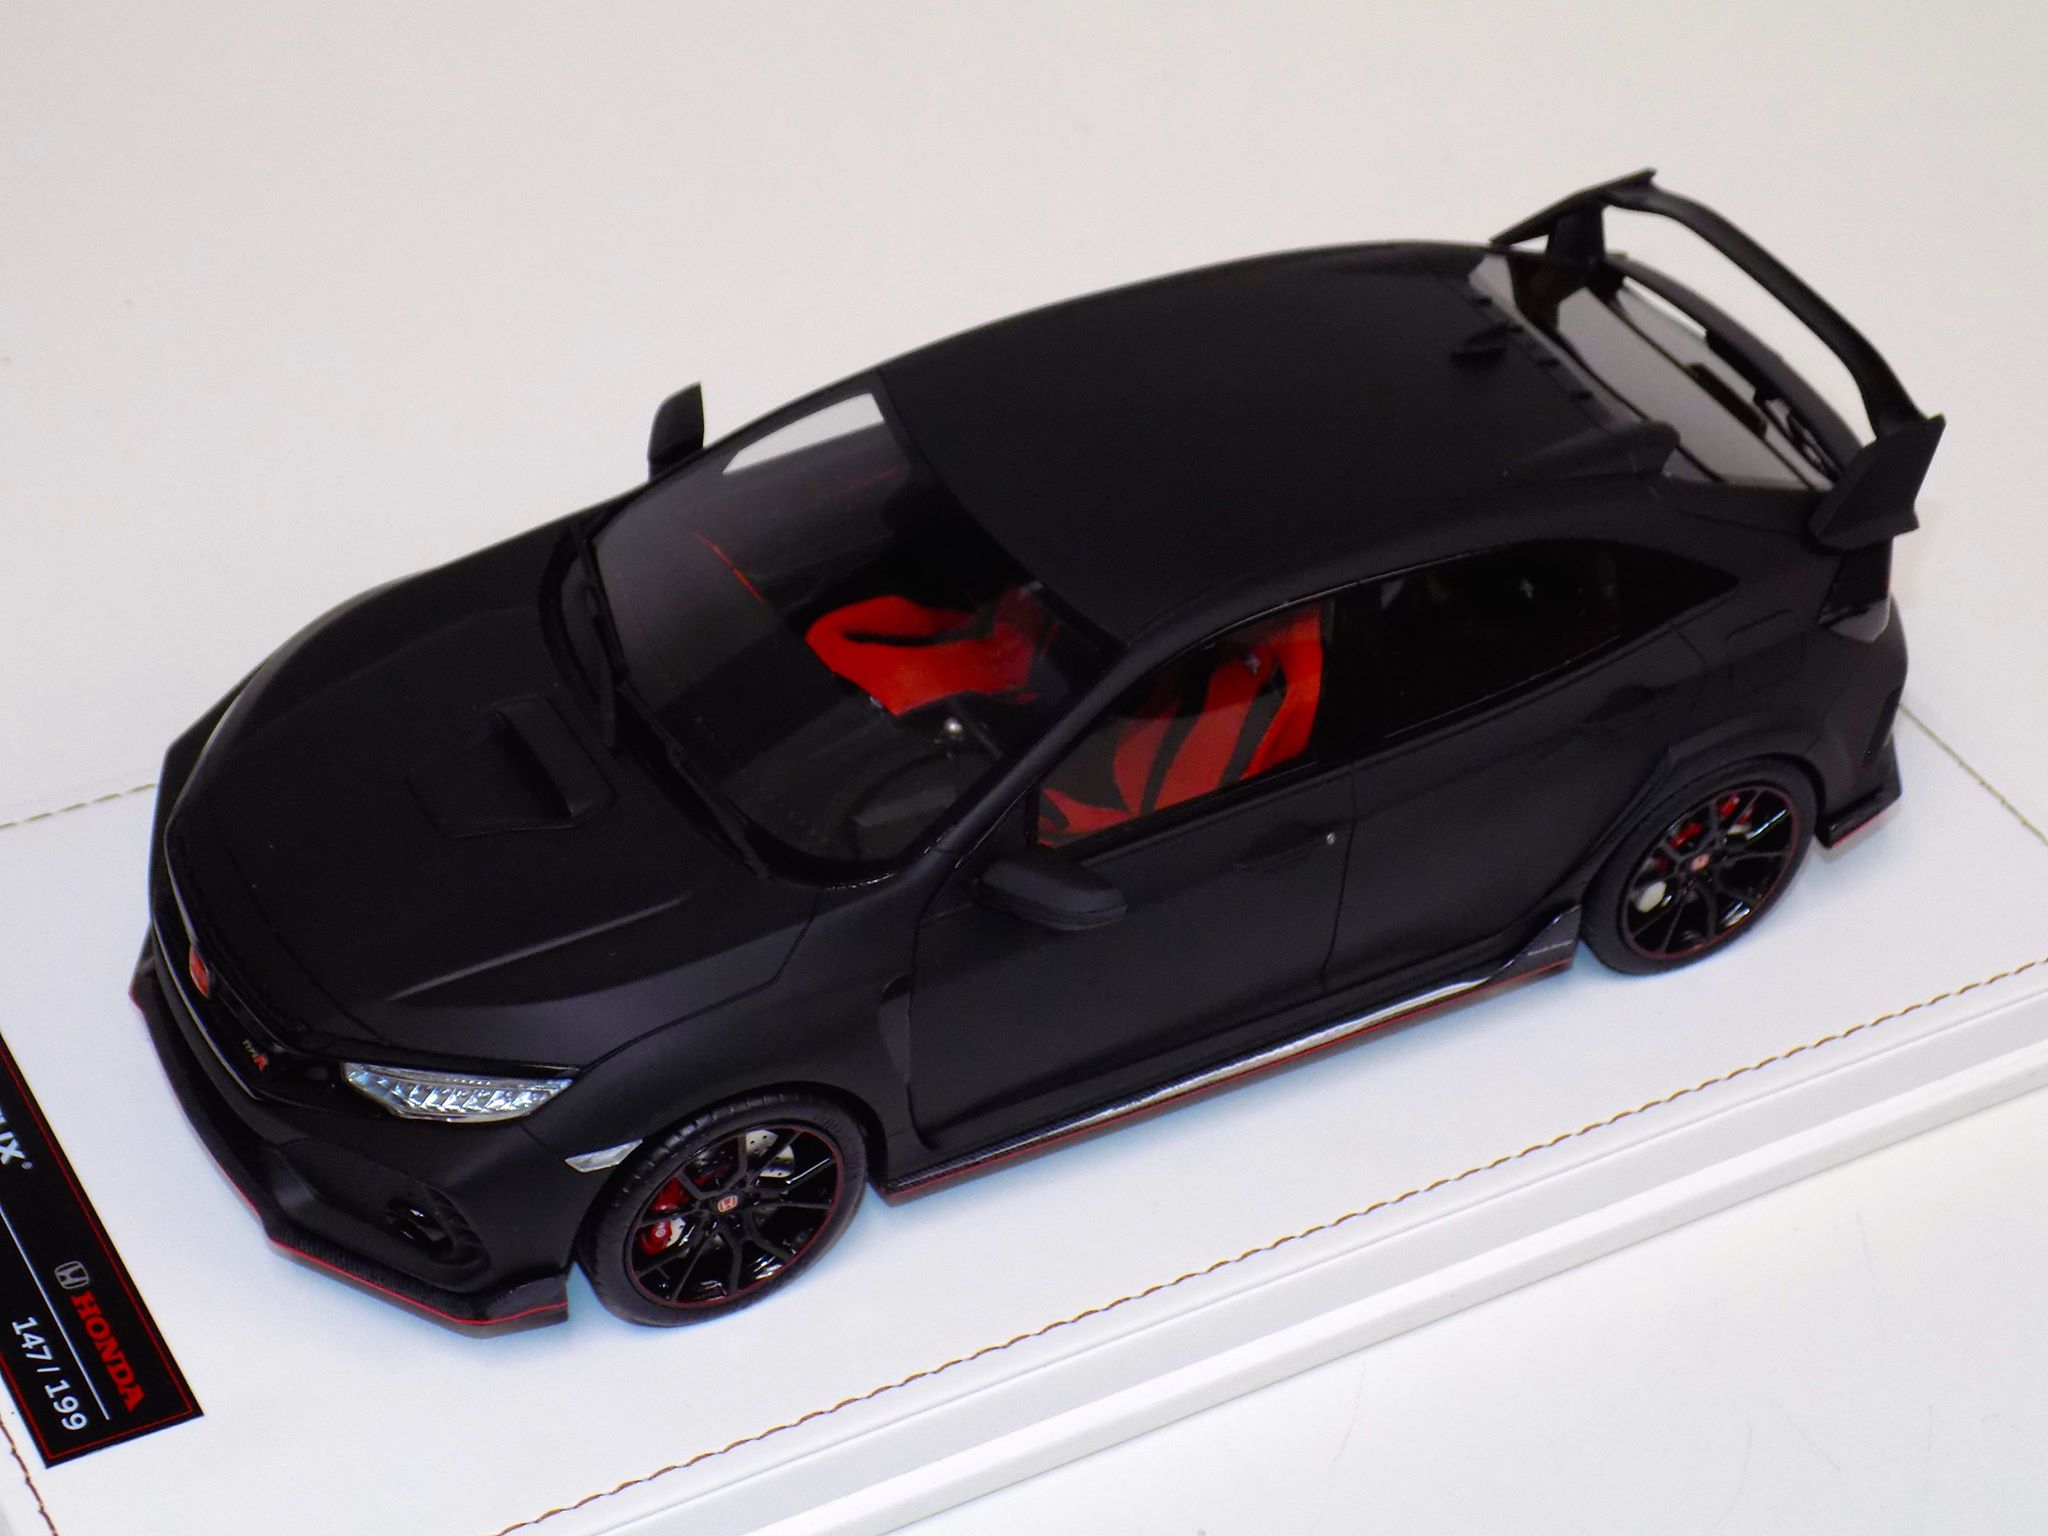 1:18 MOTORHELIX HONDA 2017 CIVIC TYPE R Matt Black